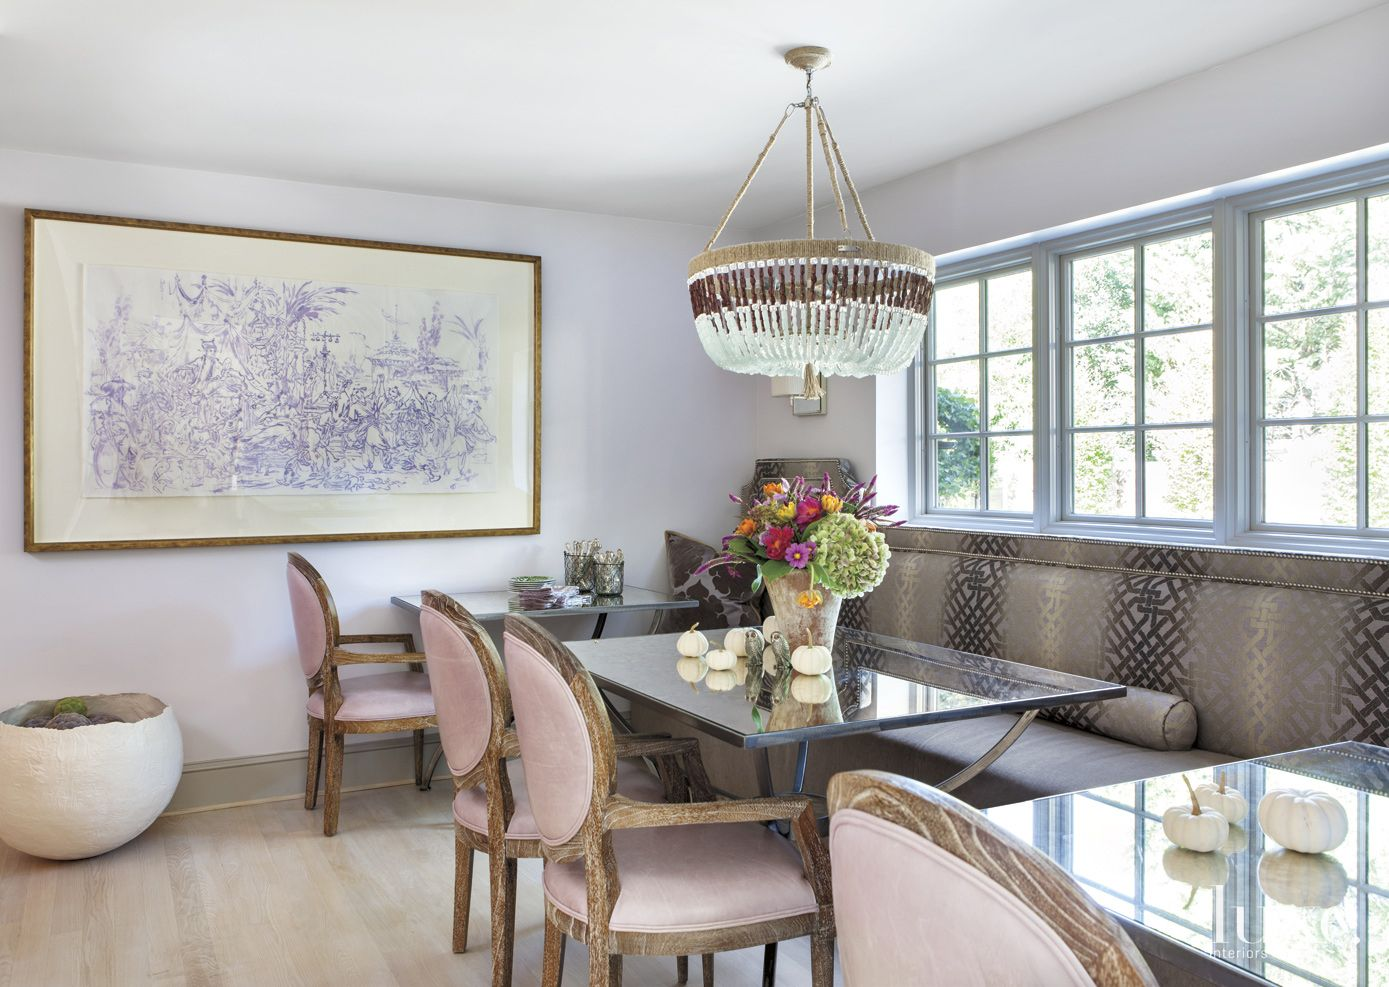 Eclectic White Breakfast Area with Patterned Banquette